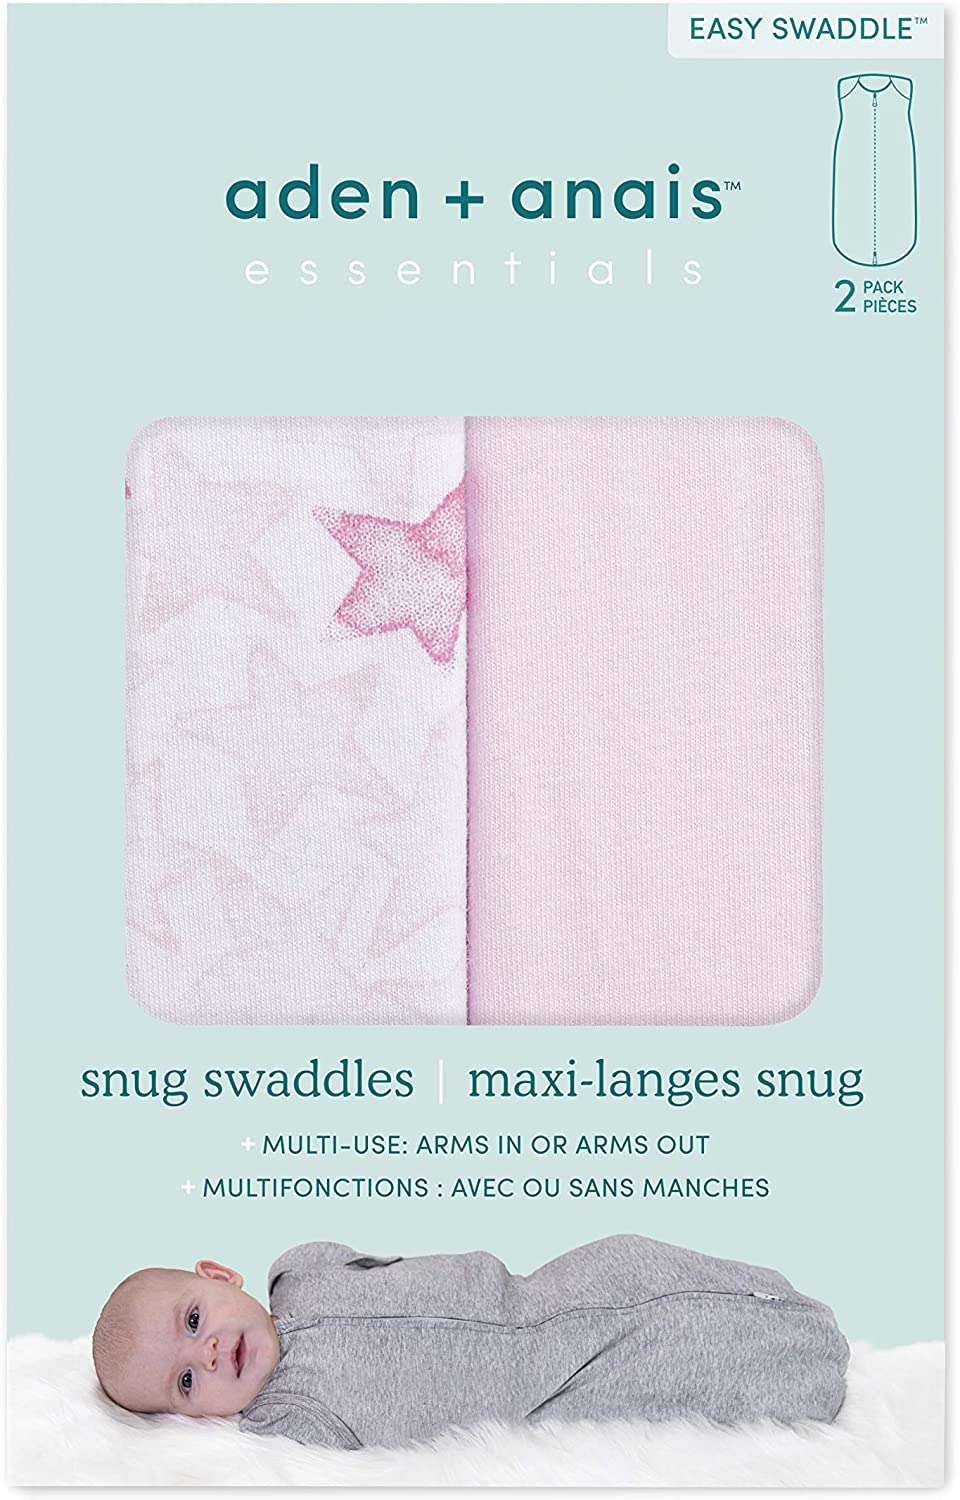 0-3 Months Newborn Anais Essentials Easy Snug Swaddle Savanna Spots 2 Pack Transitions to Arms-Free Wearable Sleeping Bag Aden